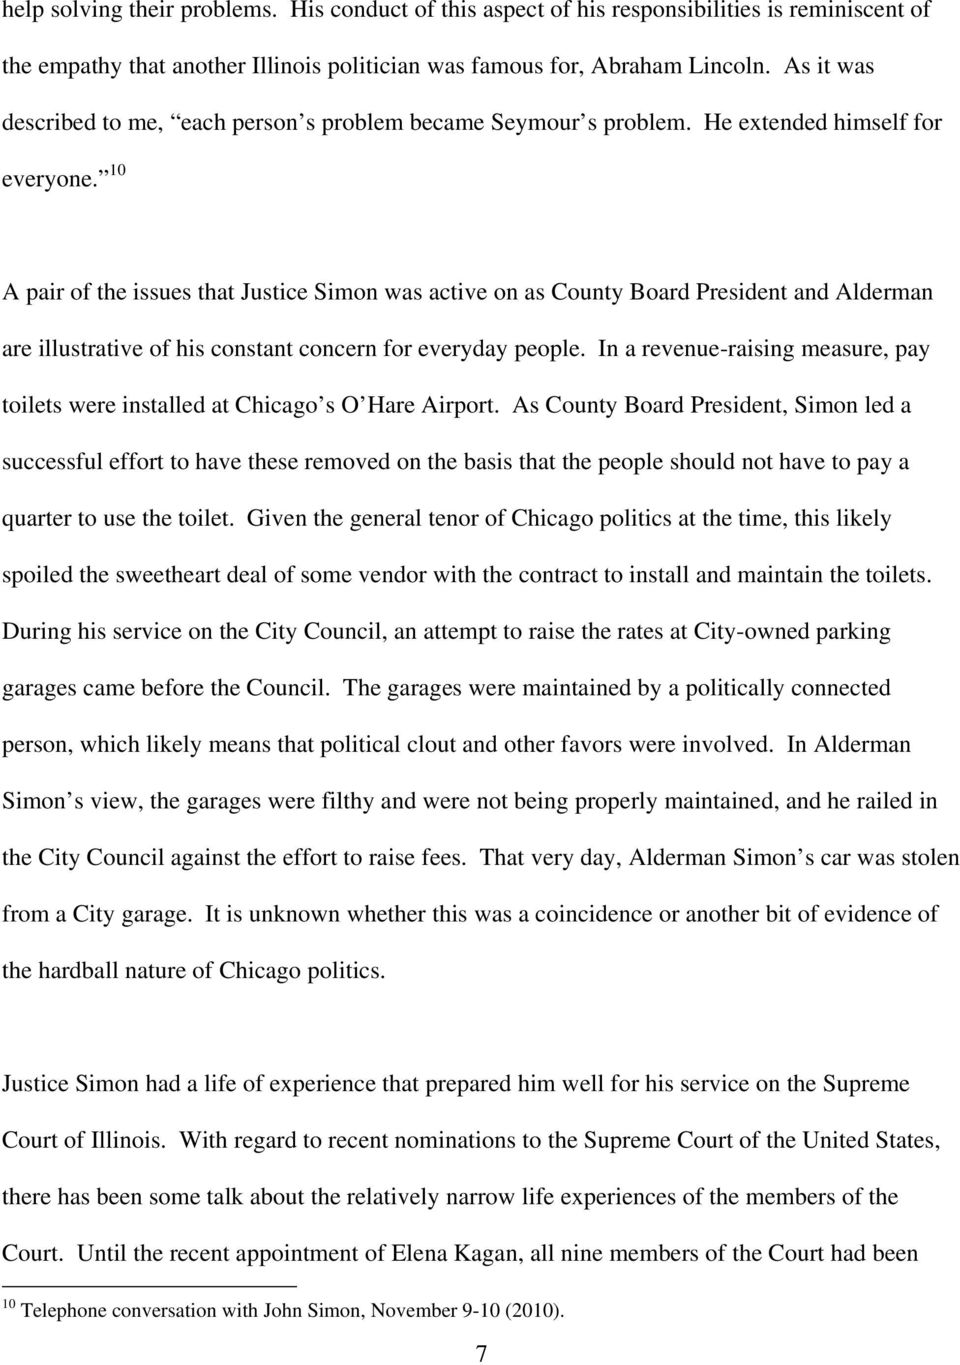 10 A pair of the issues that Justice Simon was active on as County Board President and Alderman are illustrative of his constant concern for everyday people.